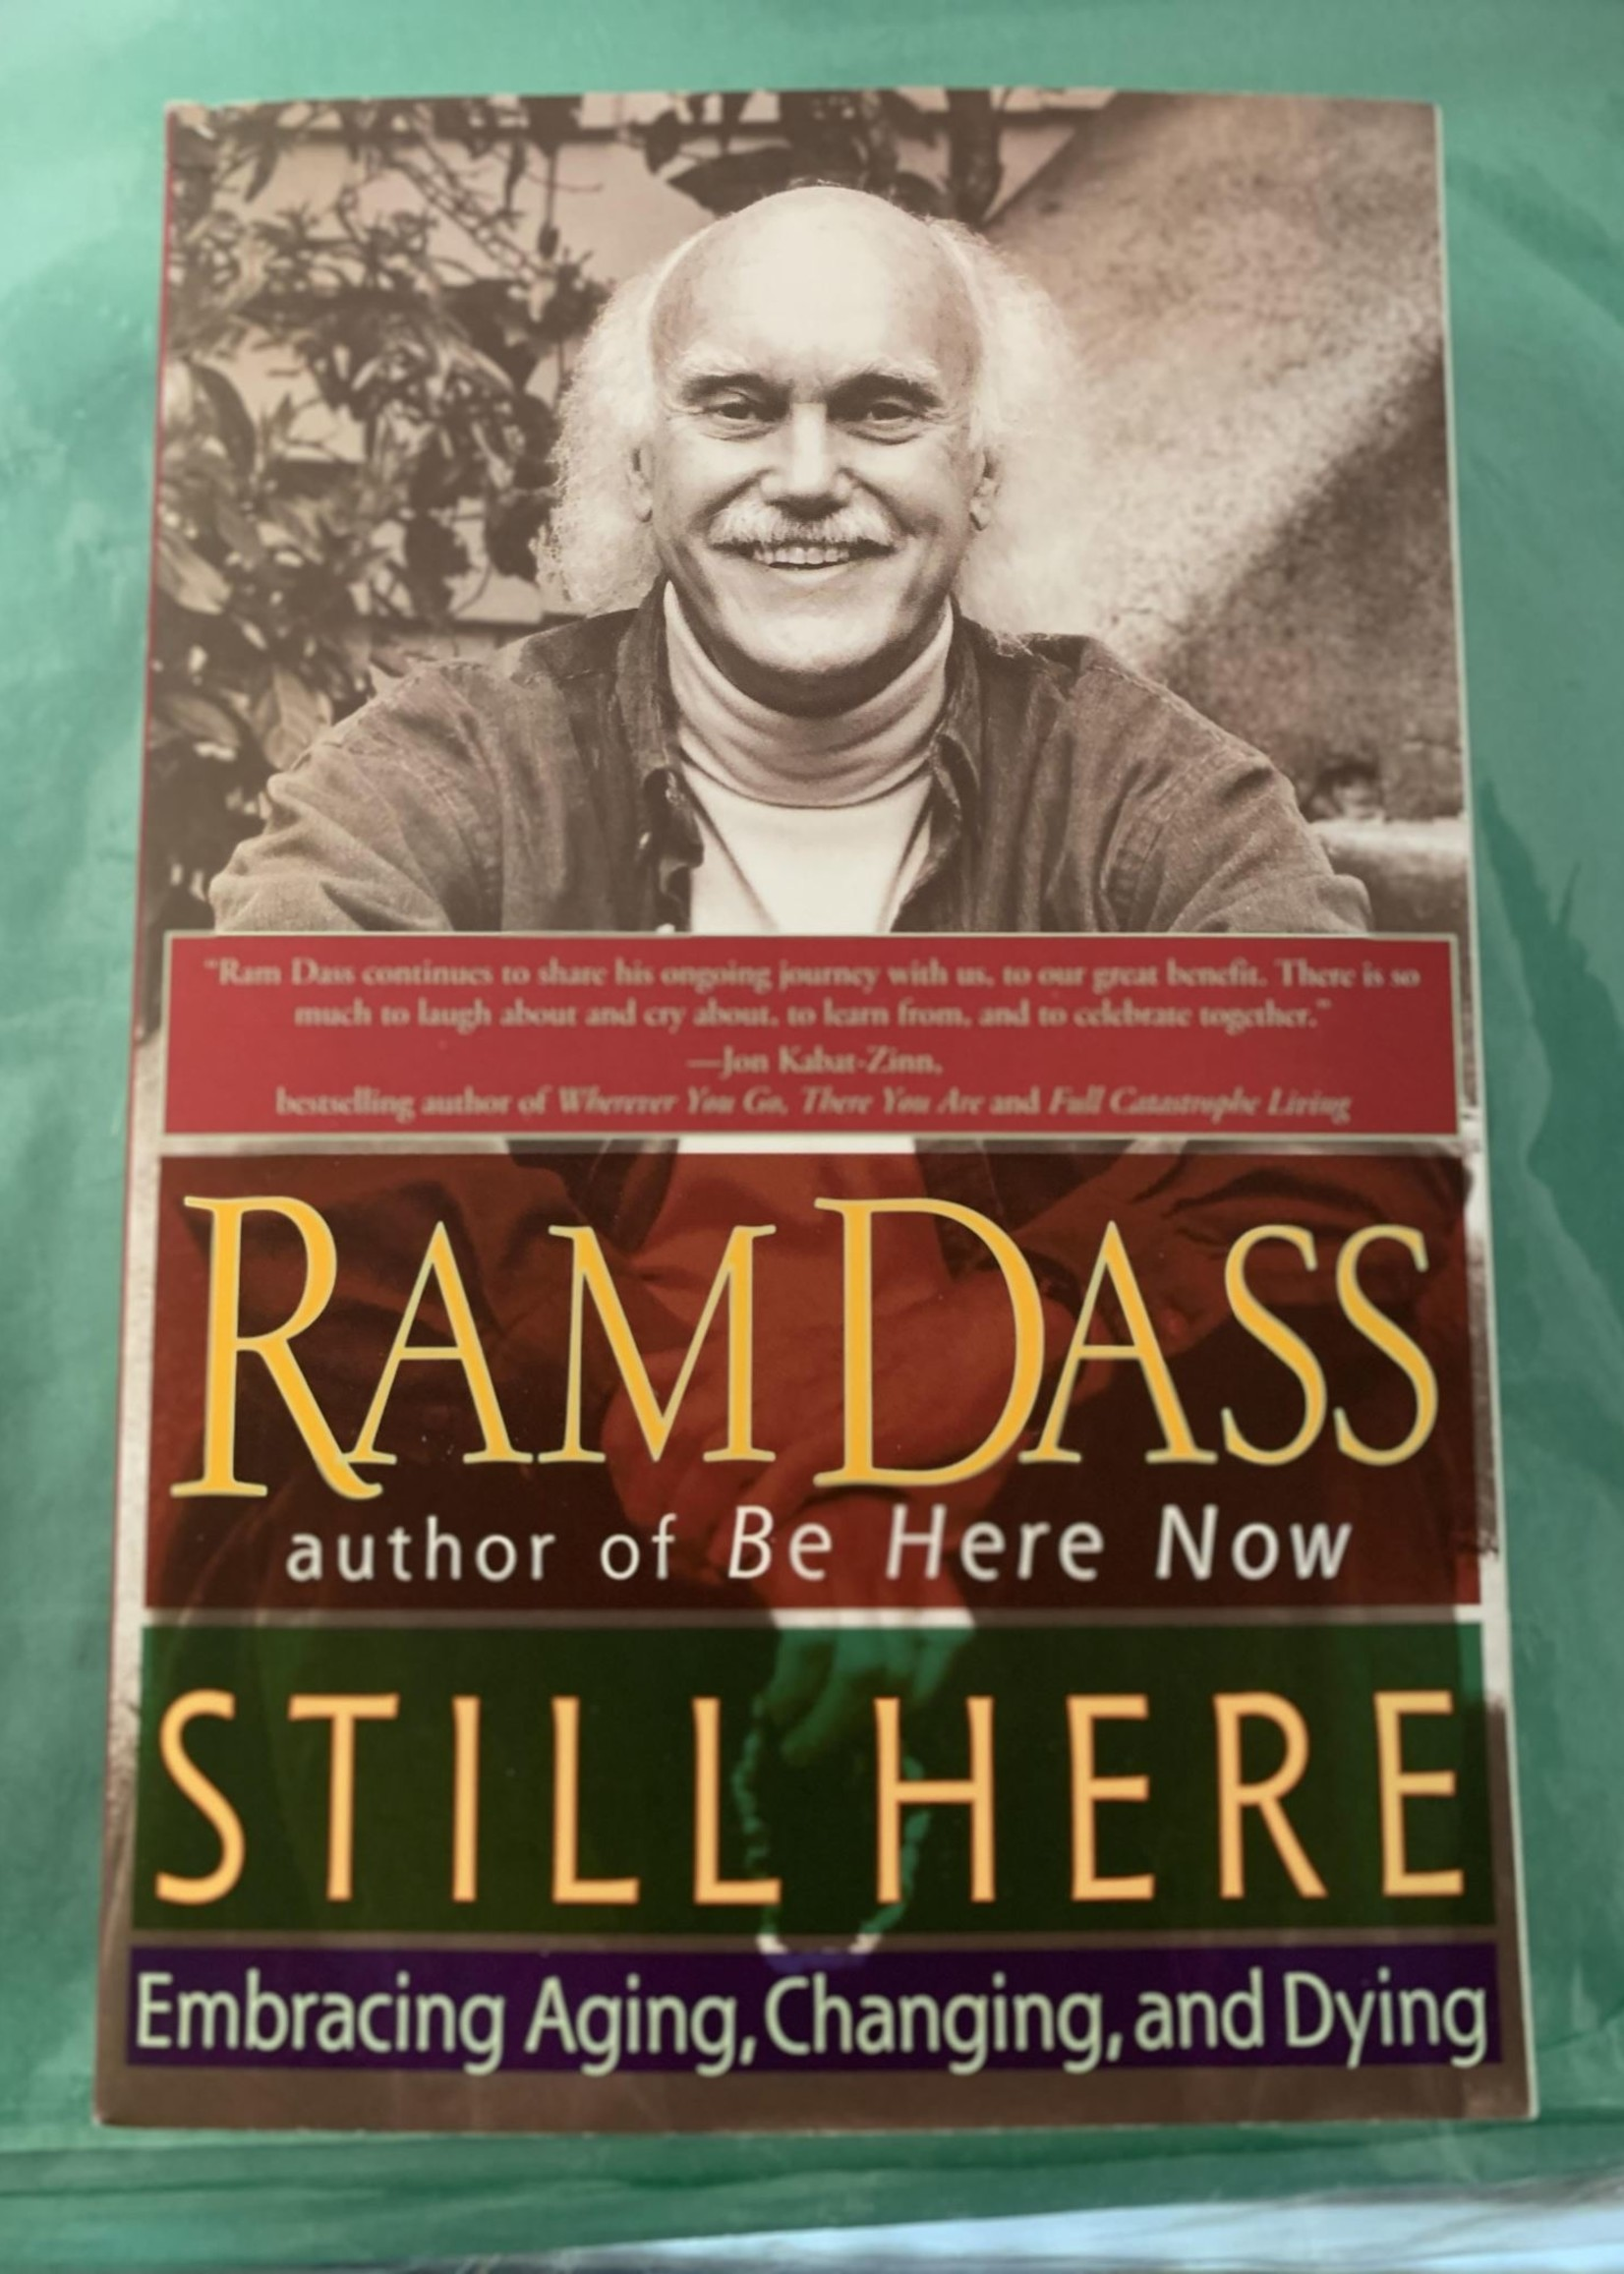 Still Here EMBRACING AGING, CHANGING, AND DYING - By RAM DASS